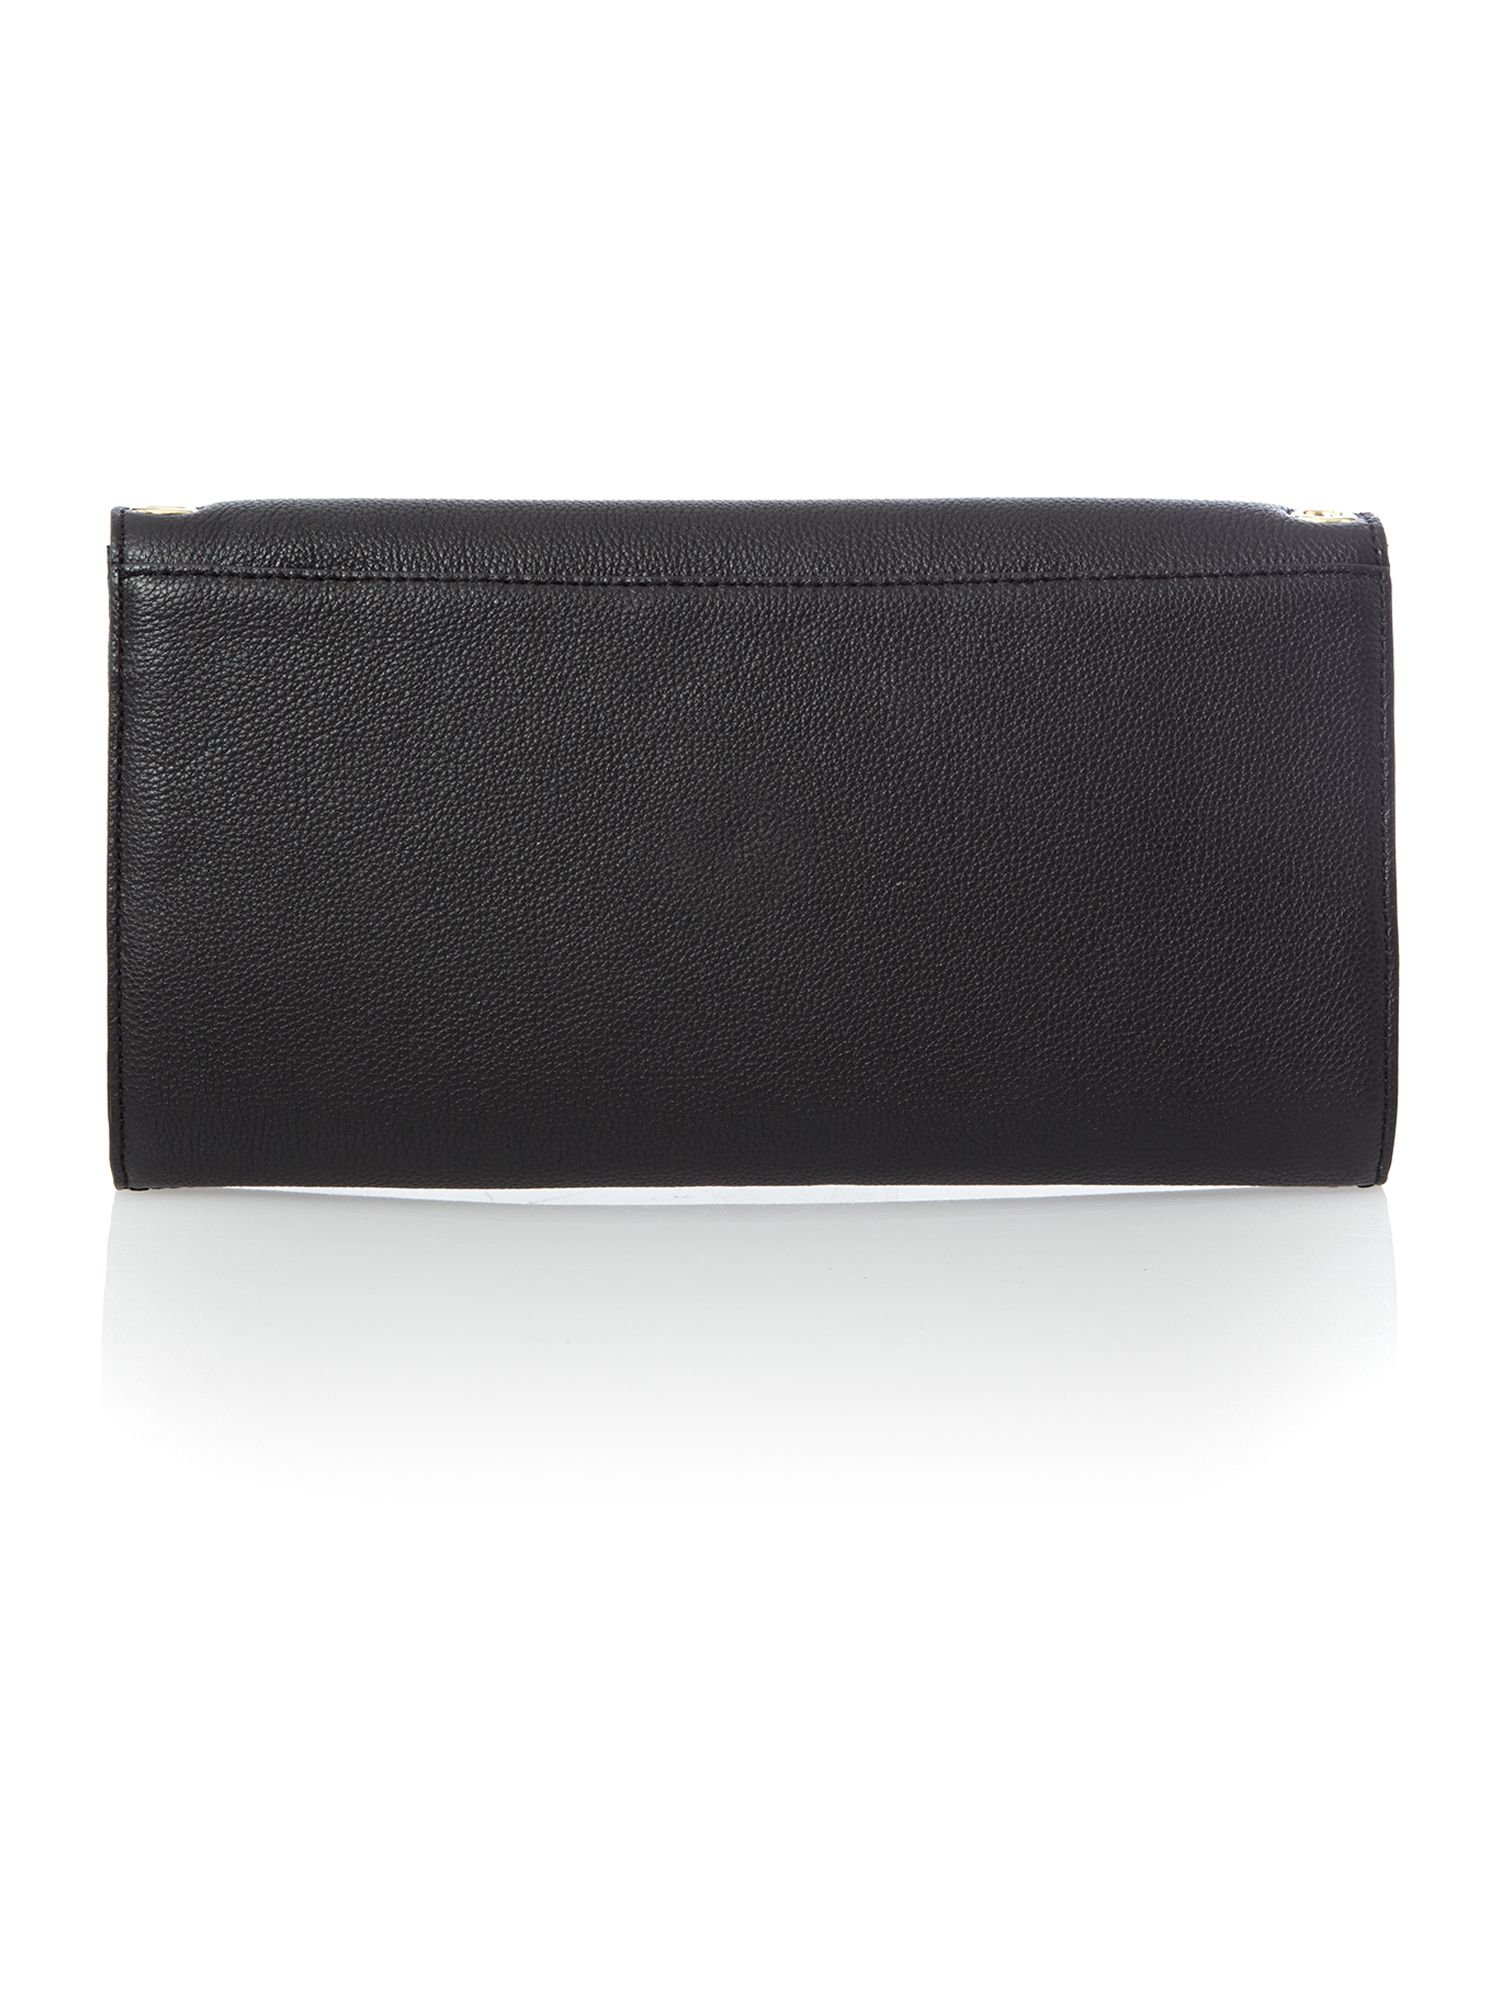 Chelsea black flap over clutch with chain detail